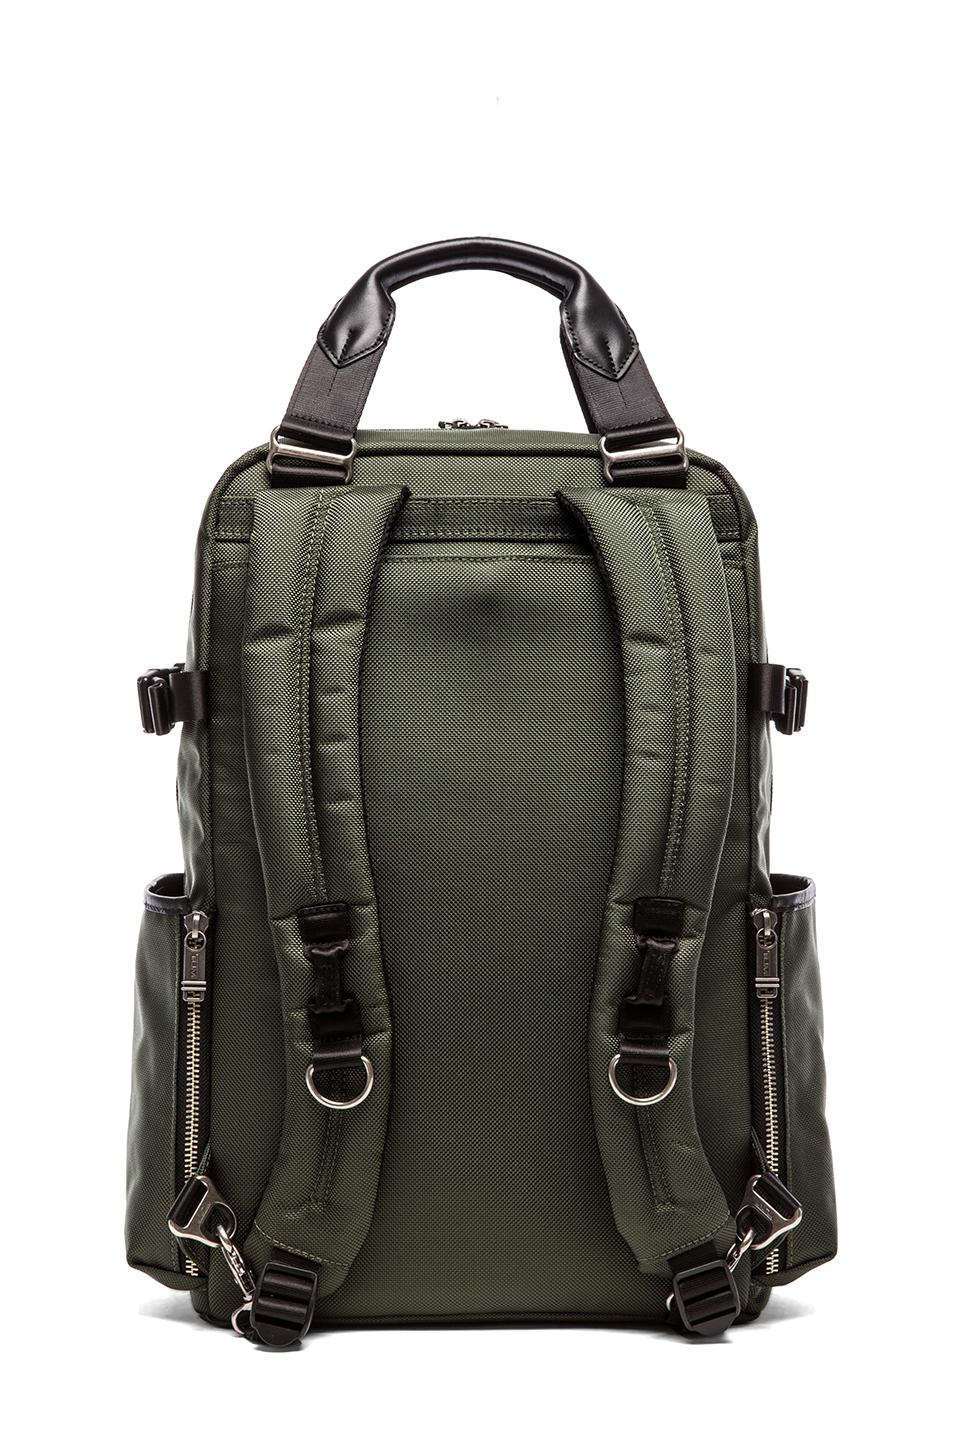 Tumi Alpha Bravo Lejeune Backpack Tote in Spruce